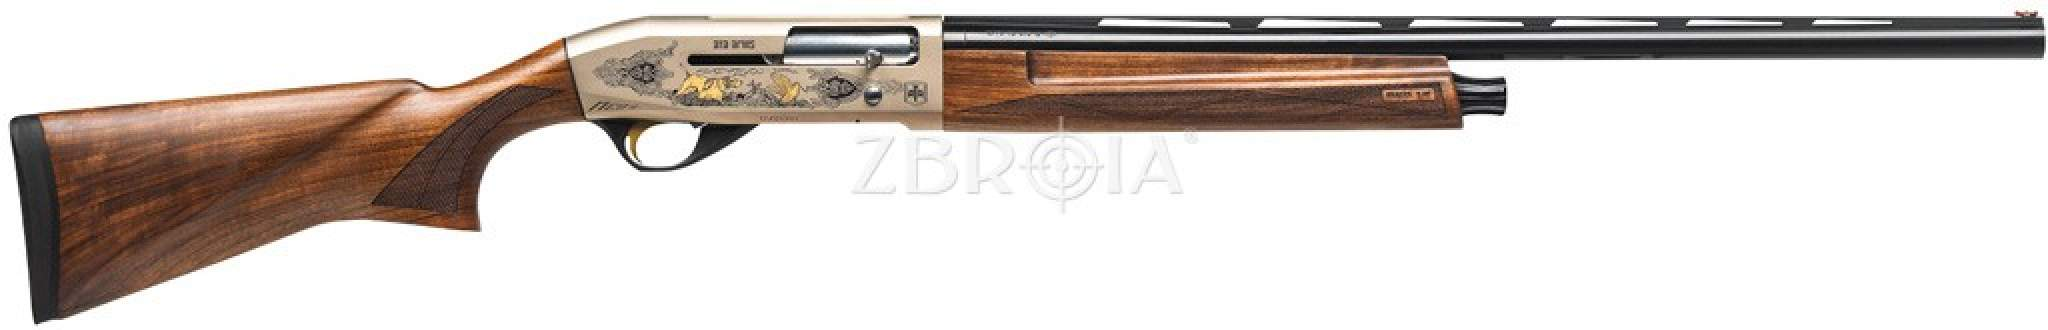 Ружье Ata Arms NEO12 Nickel Deluxe кал. 12/76 (ствол 71 см.)